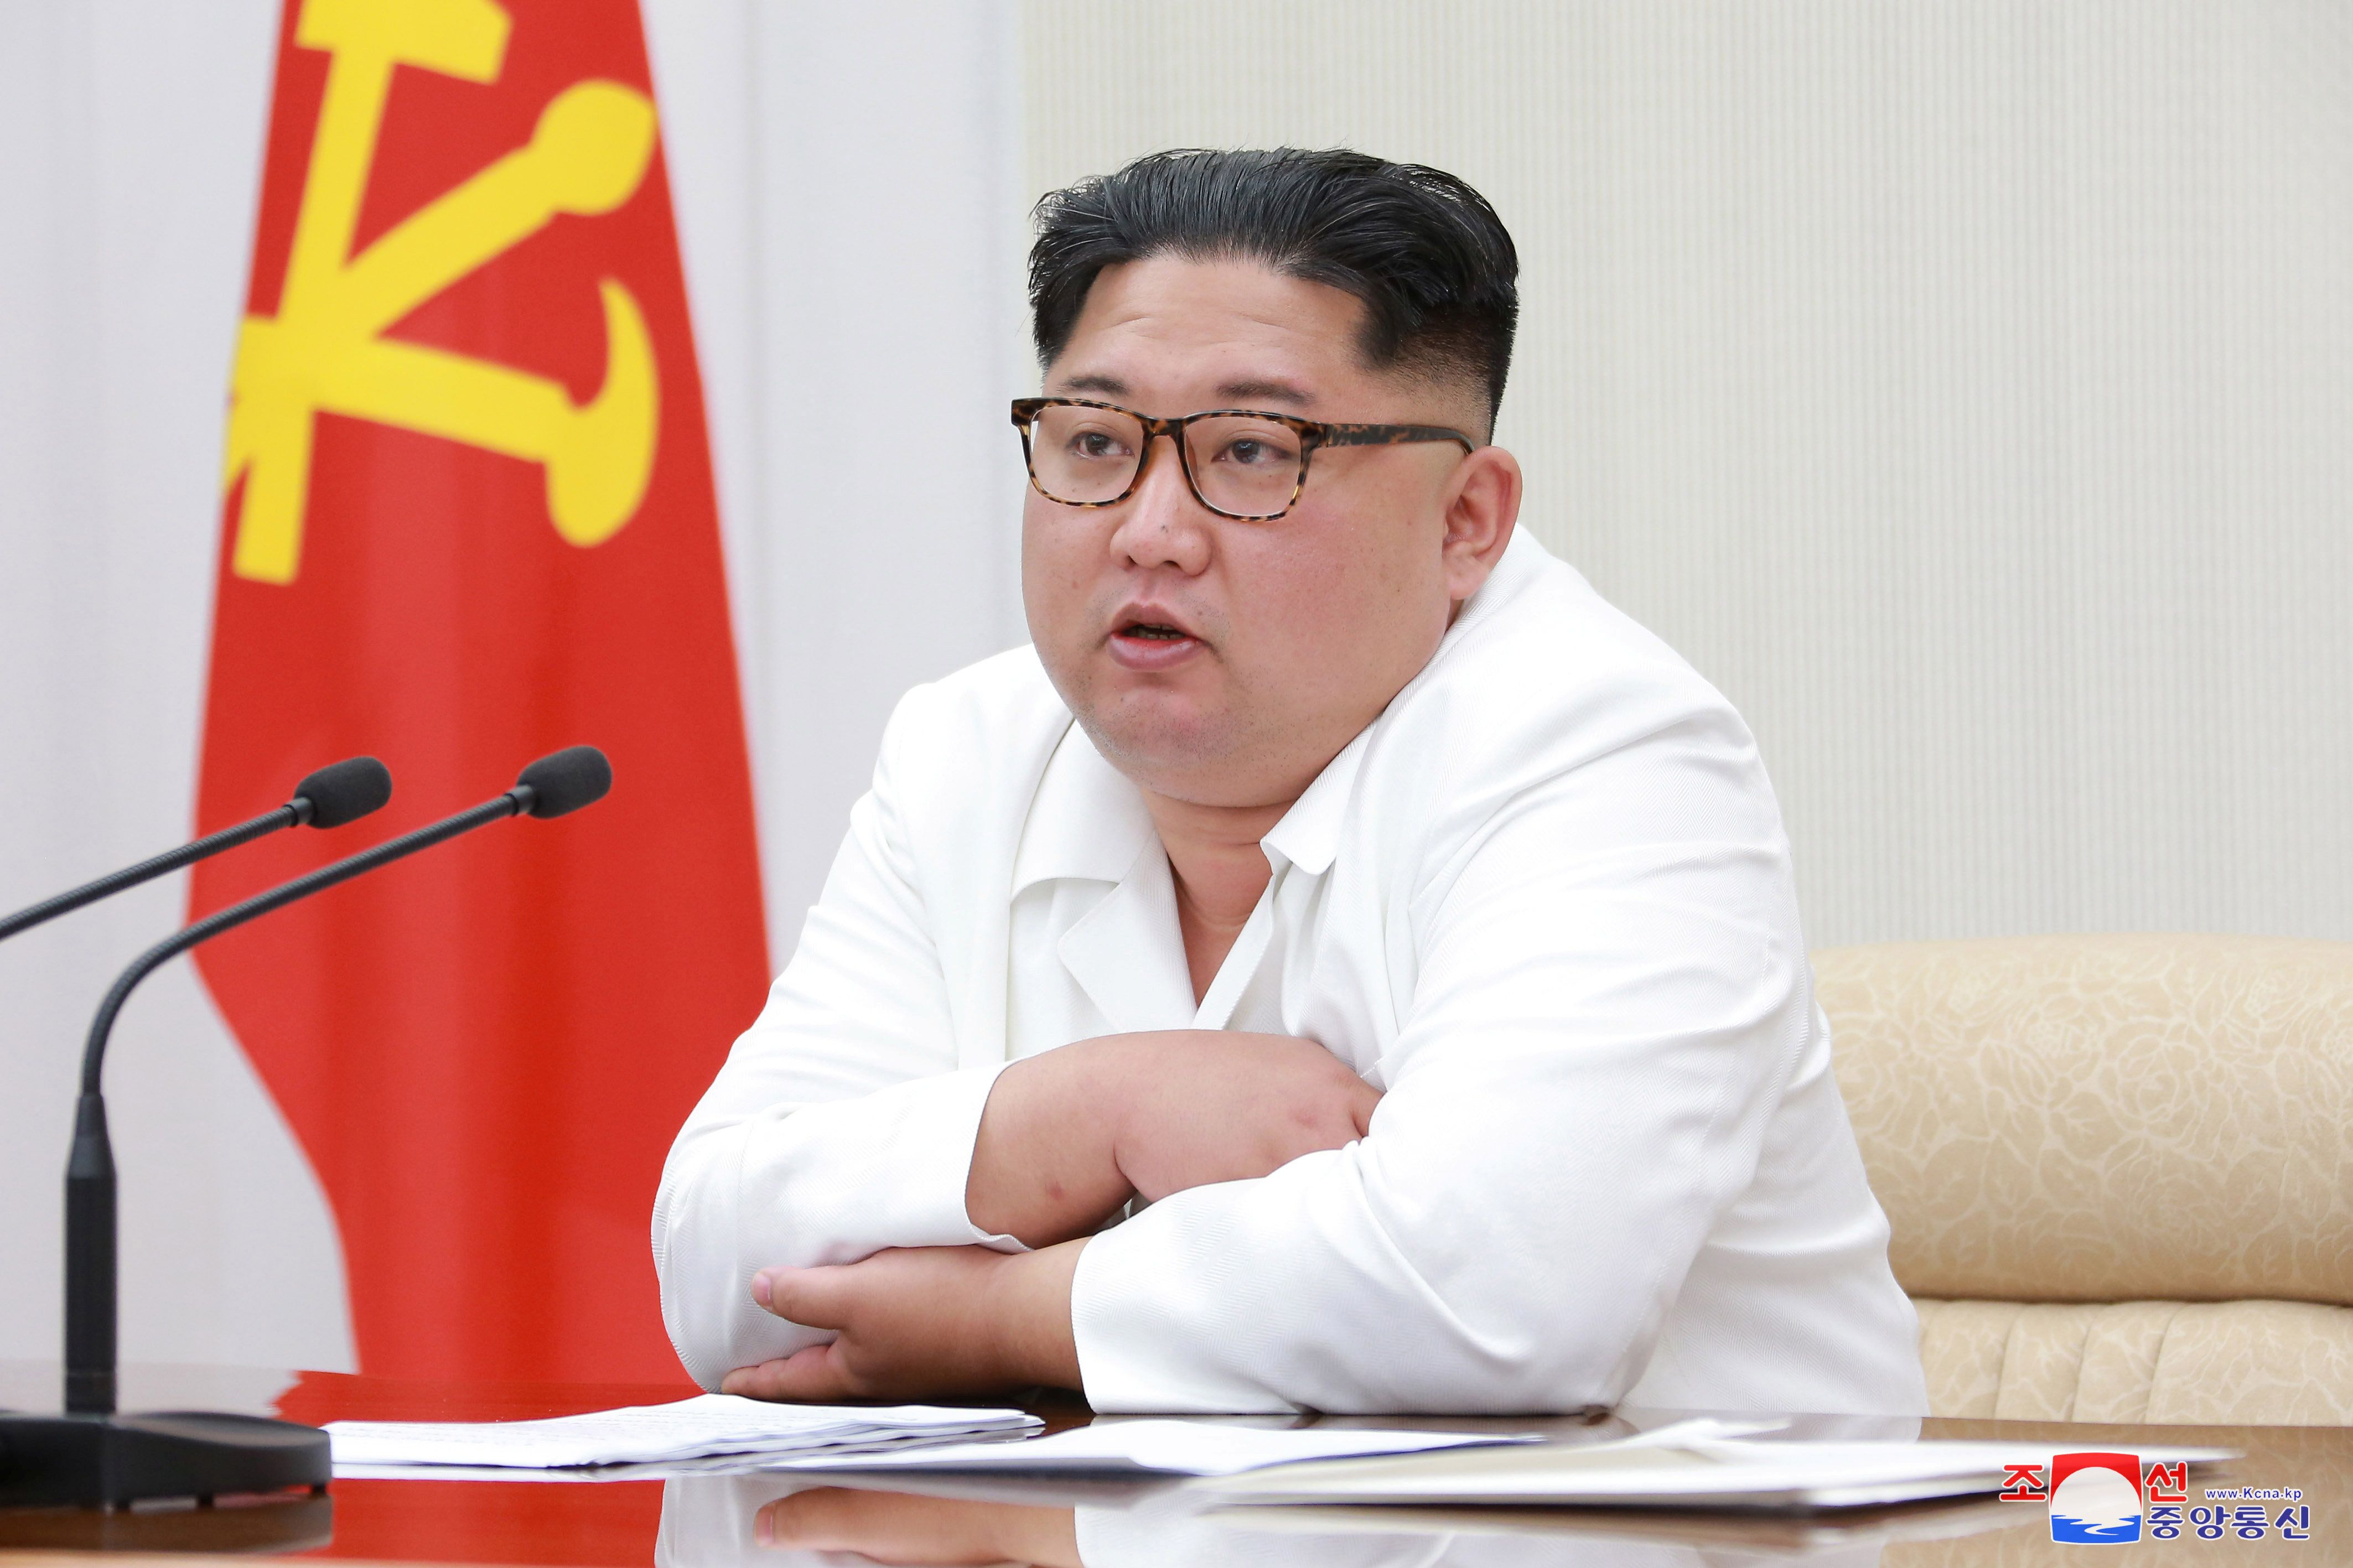 North Korean leader Kim Jong Un speaks during the first enlarged meeting of the seventh Central Military Commission of the Workers' Party of Korea (WPK), in this undated photo released by North Korea's Korean Central News Agency (KCNA) in Pyongyang May 18, 2018. KCNA/via REUTERS ATTENTION EDITORS - THIS PICTURE WAS PROVIDED BY A THIRD PARTY. REUTERS IS UNABLE TO INDEPENDENTLY VERIFY THE AUTHENTICITY, CONTENT, LOCATION OR DATE OF THIS IMAGE. NO THIRD PARTY SALES. SOUTH KOREA OUT.